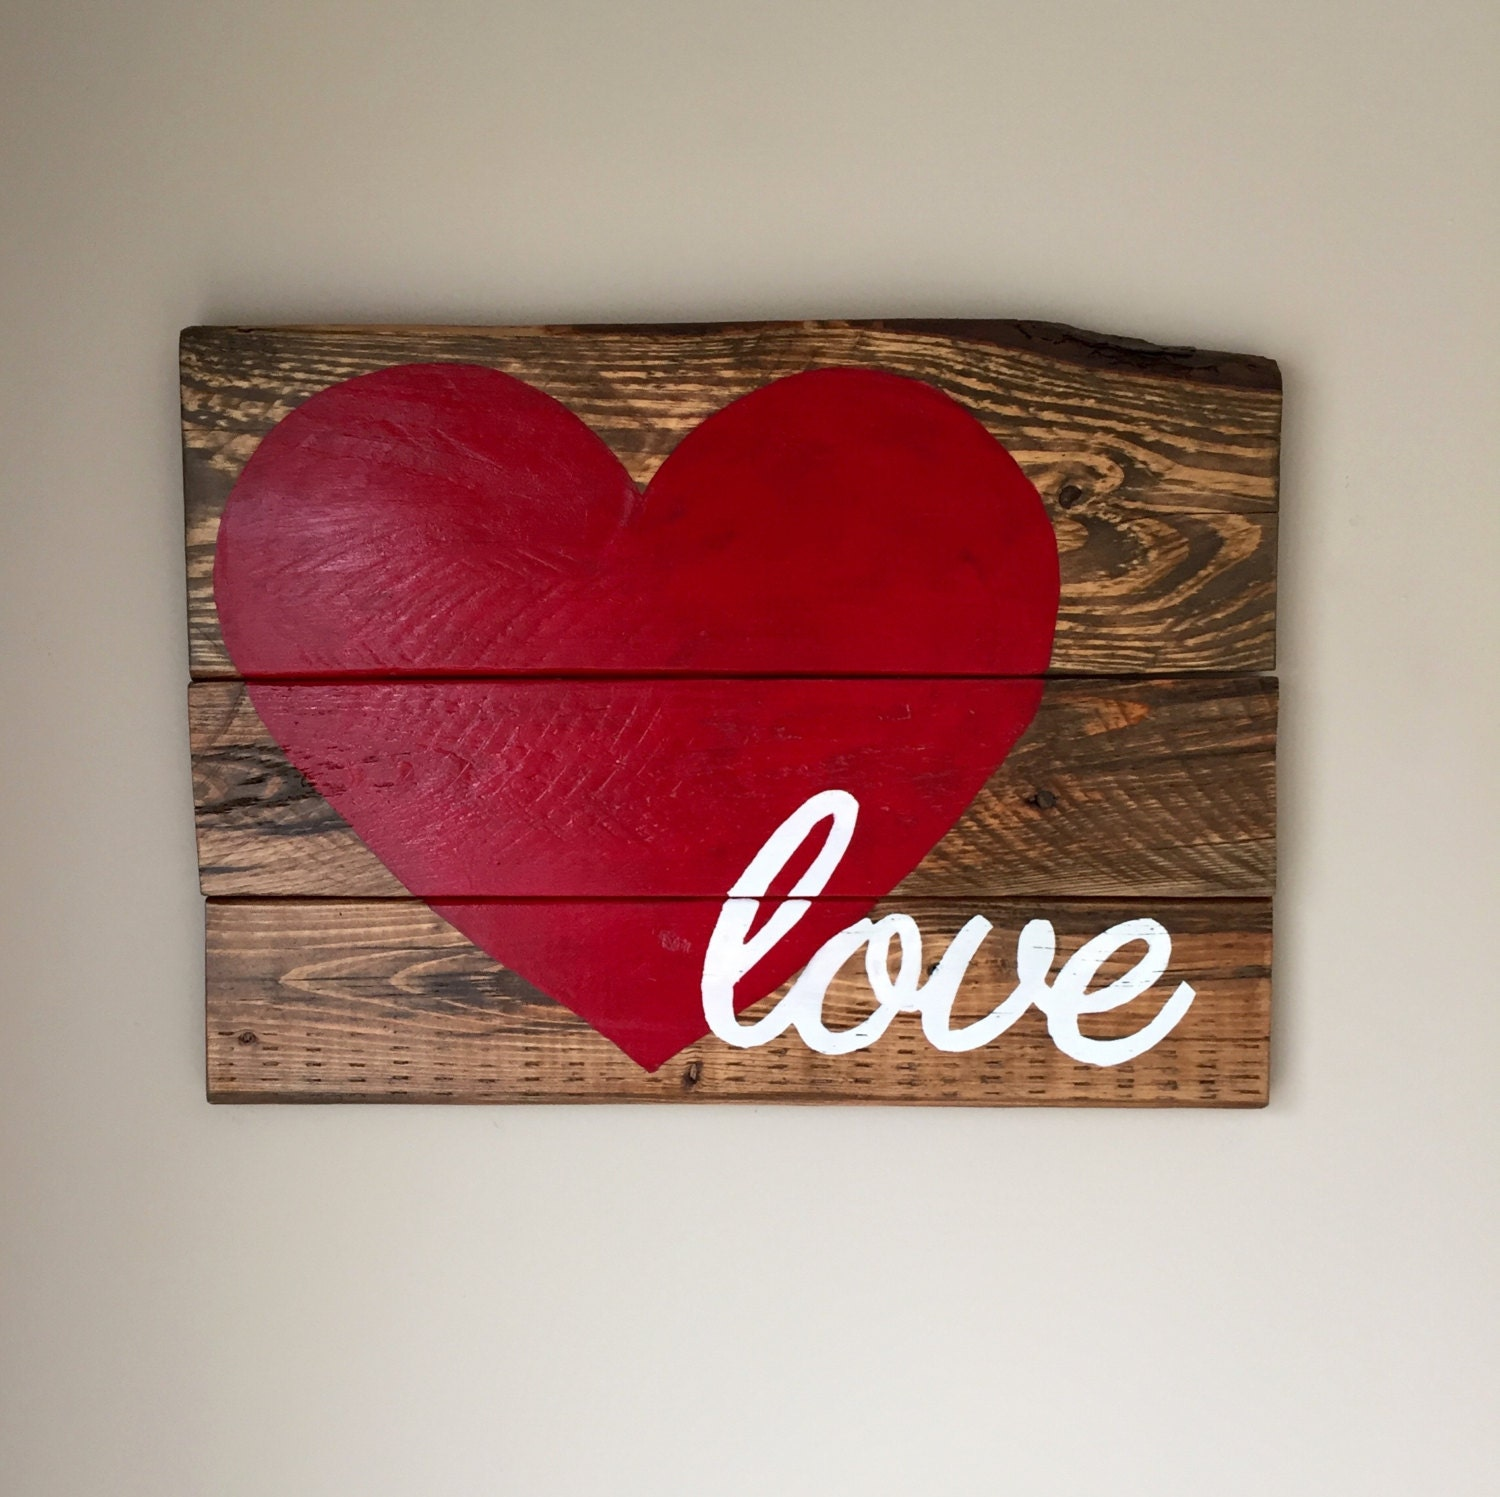 Reclaimed Wood Love Sign Handmade Rustic By Fallentimbercrafts. Garcinia Cambogia Signs. June 5 Signs. Bracket Signs Of Stroke. Vegan Cafe Signs. Leo Capricorn Signs Of Stroke. Steve Silberman Signs. Classroom Signs Of Stroke. Marriage Signs Of Stroke